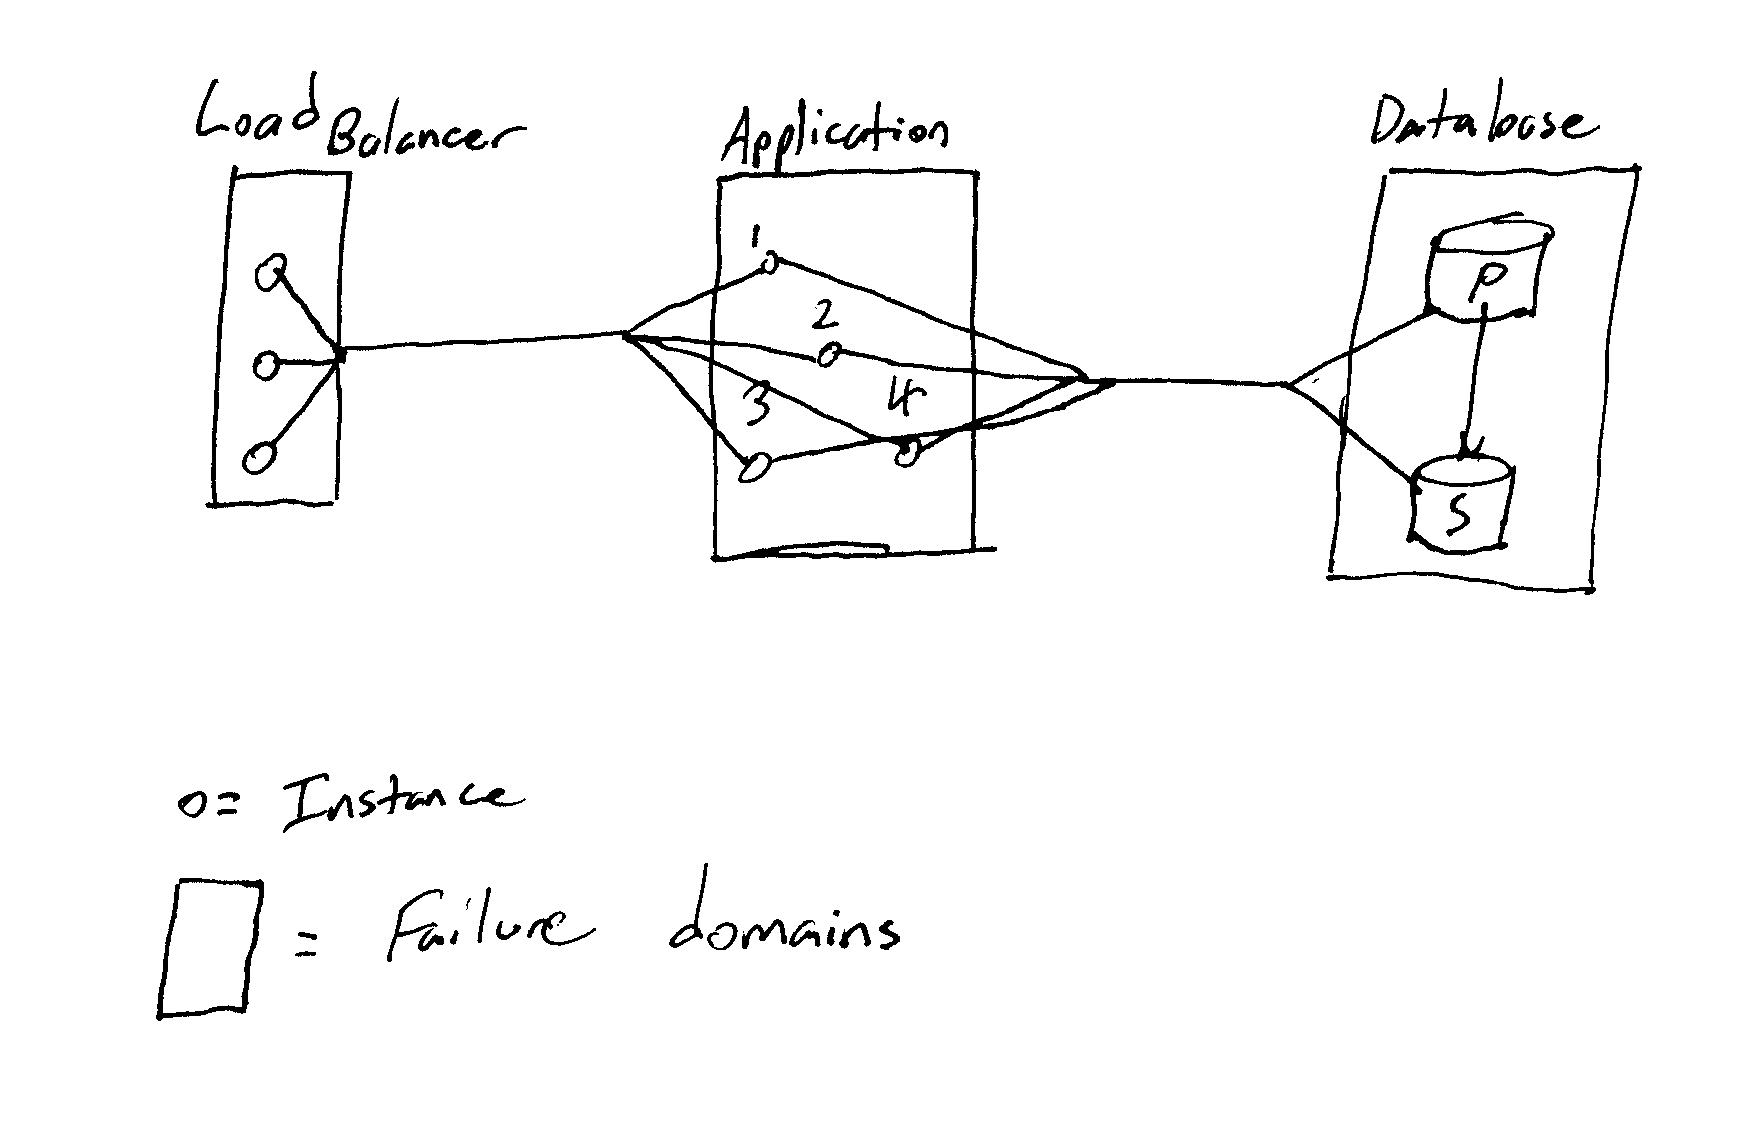 A somewhat typical application architecture